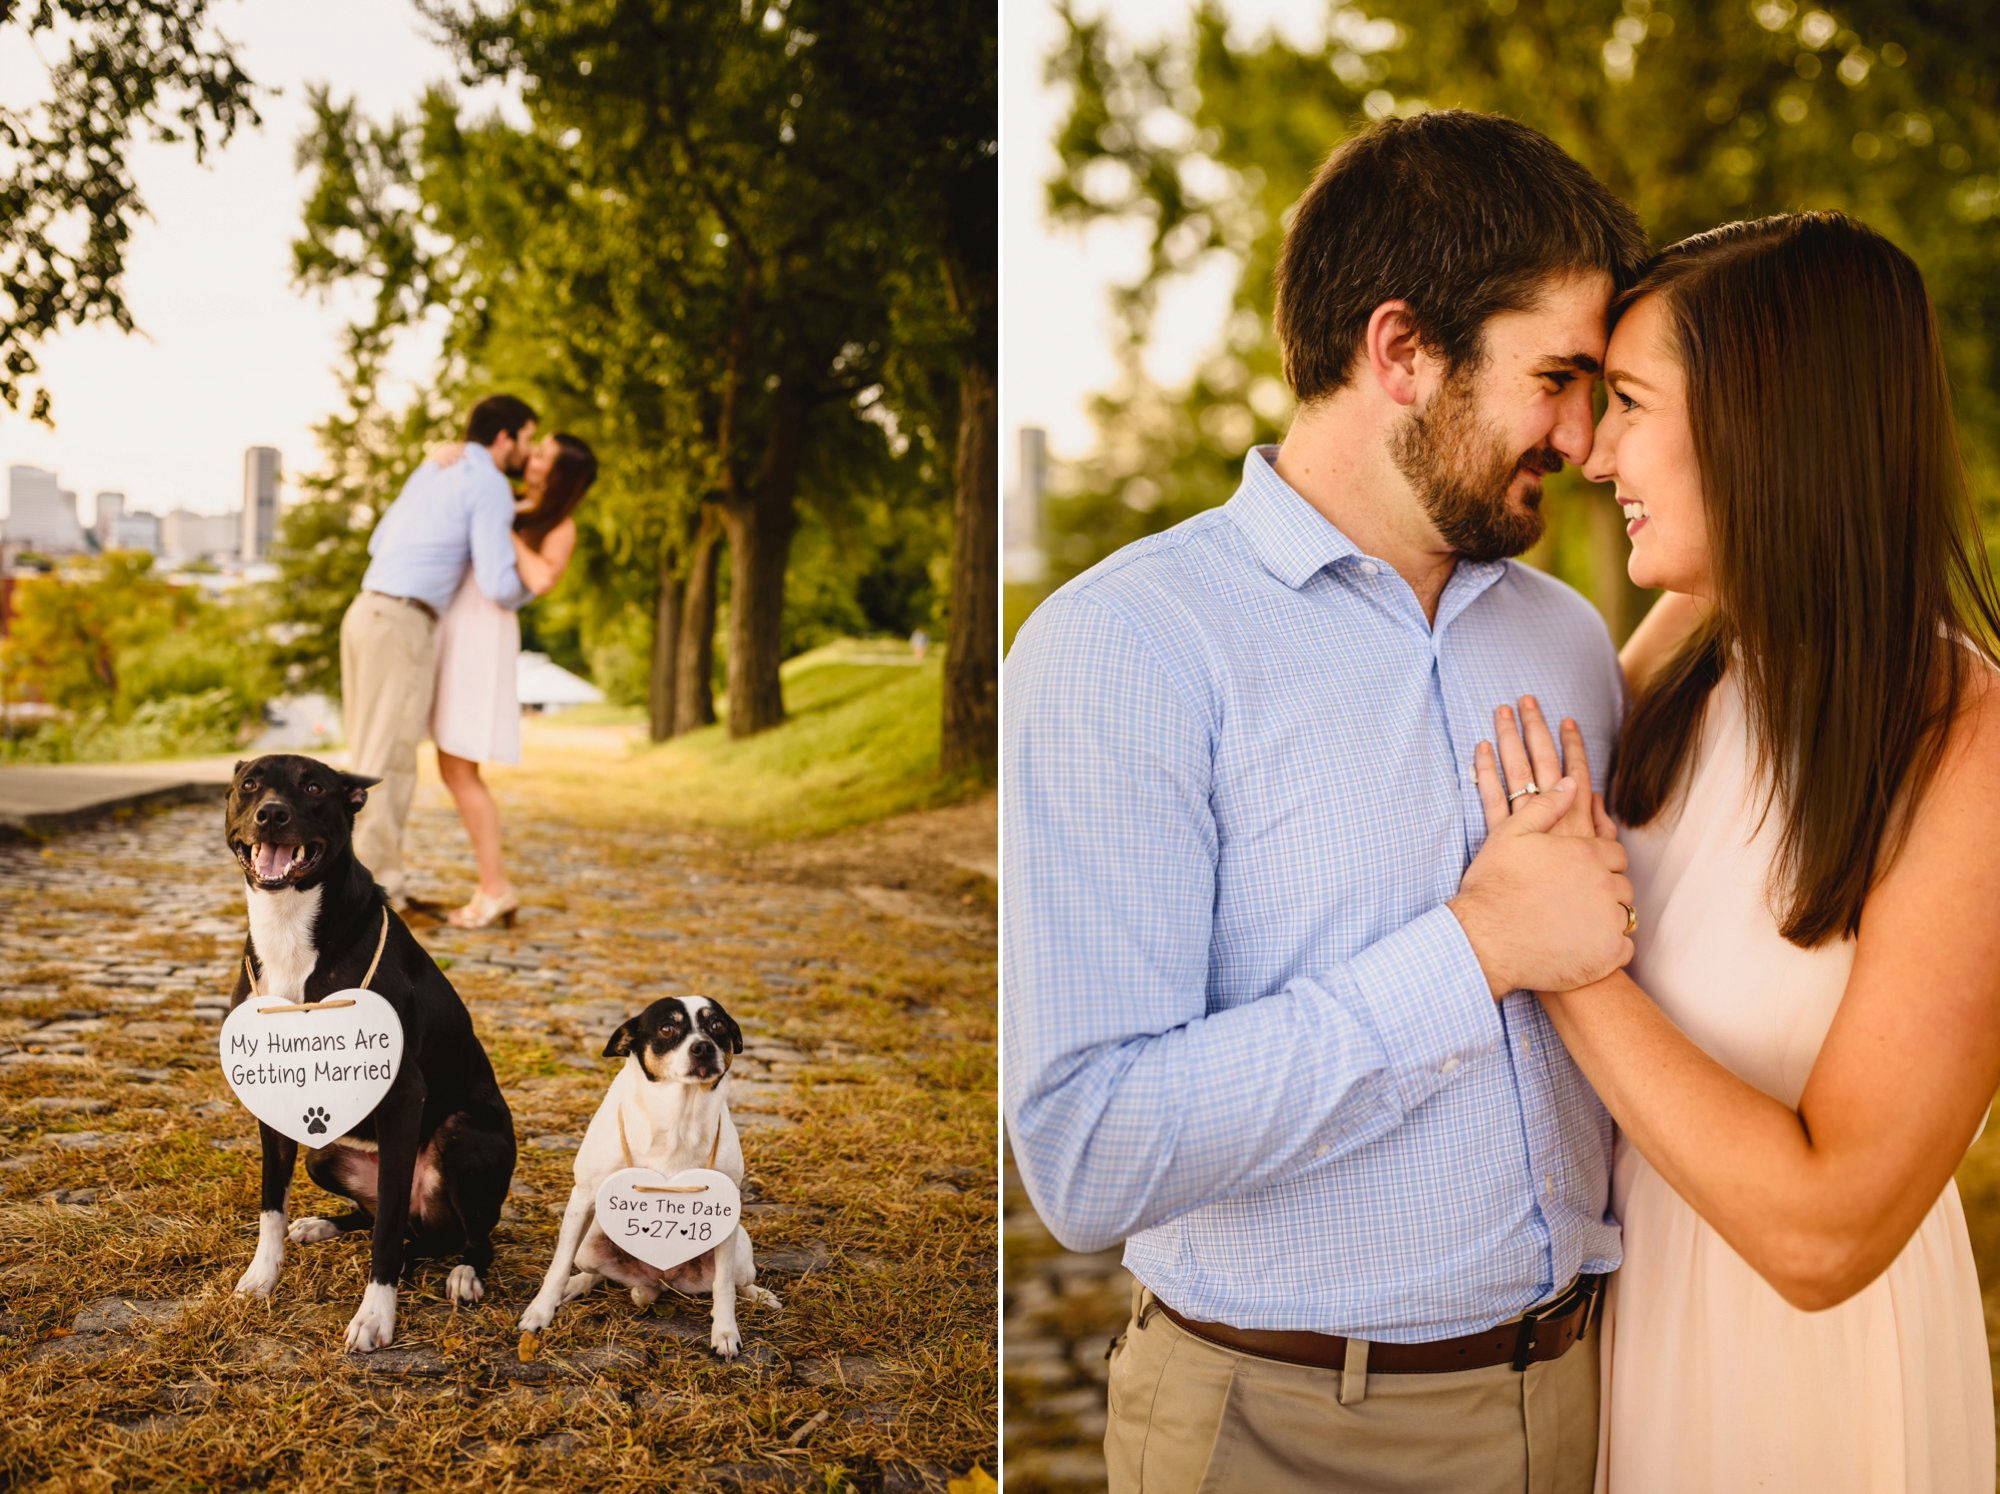 engagement-photography-88-love-stories-2.jpg